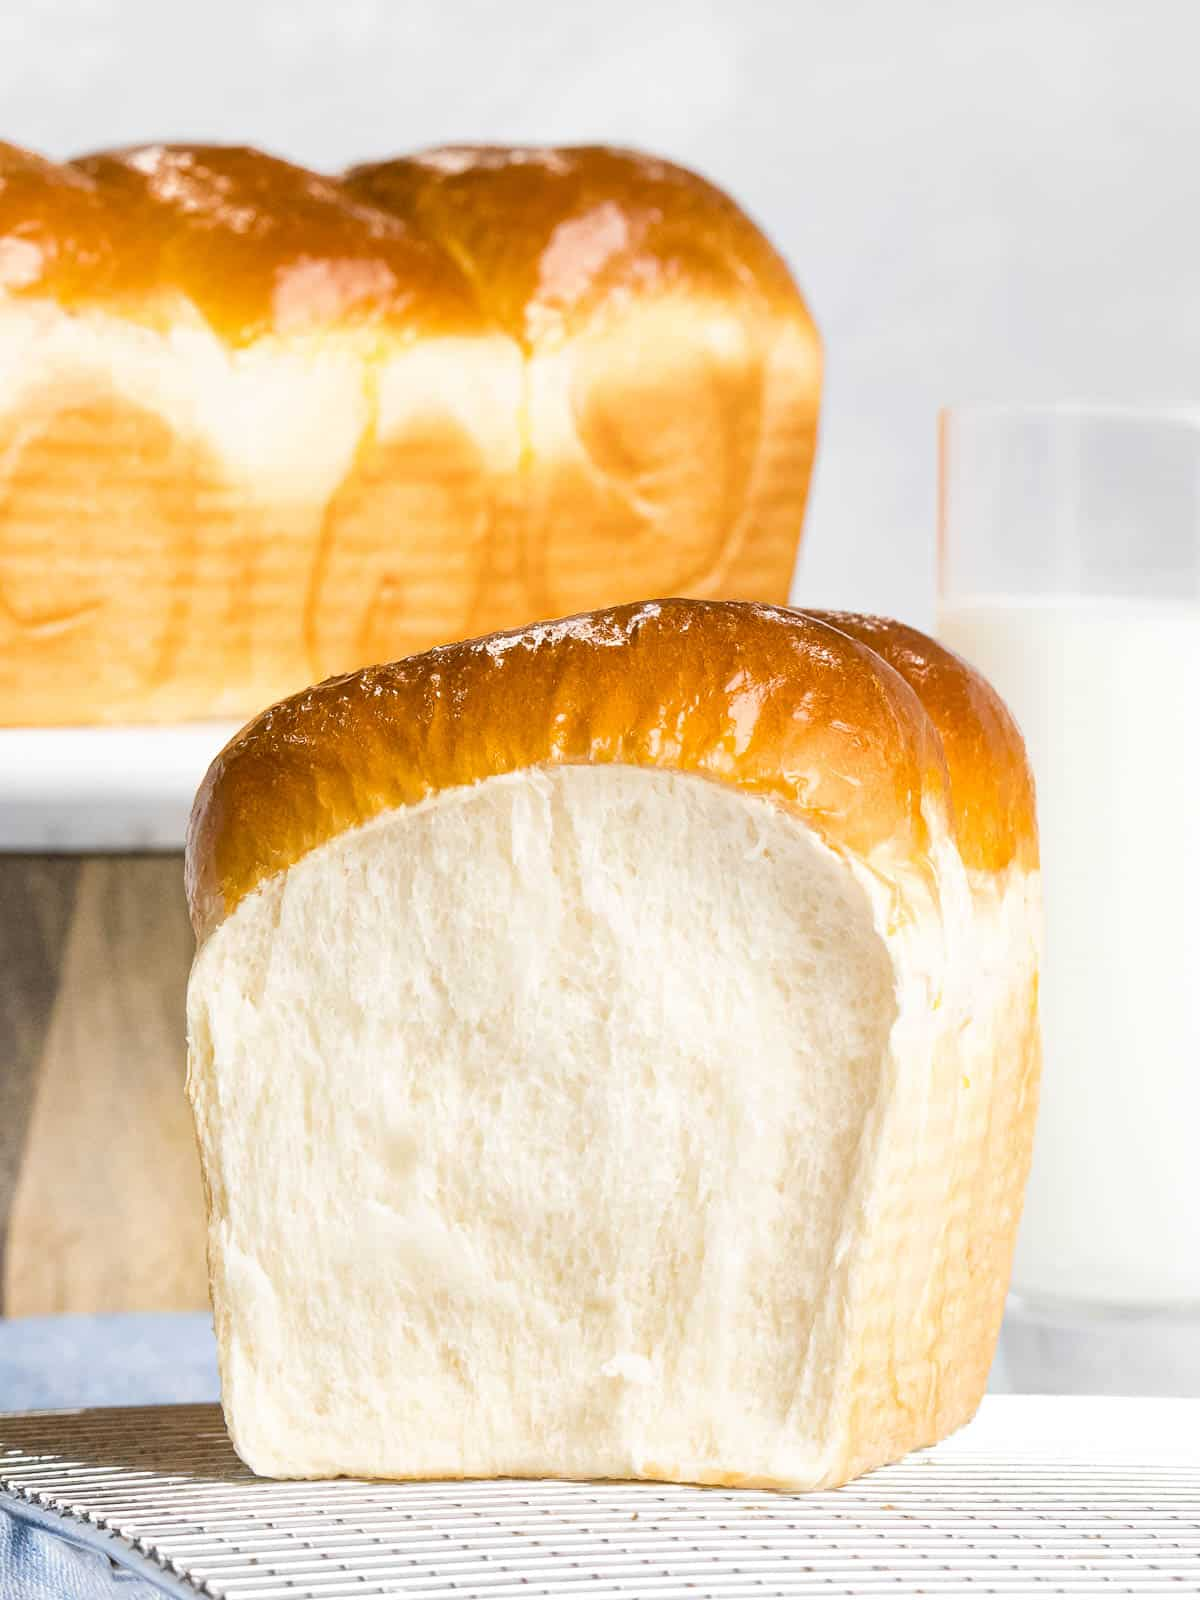 Soft and fluffy Japanese milk bread (shokupan) with golden brown crust.